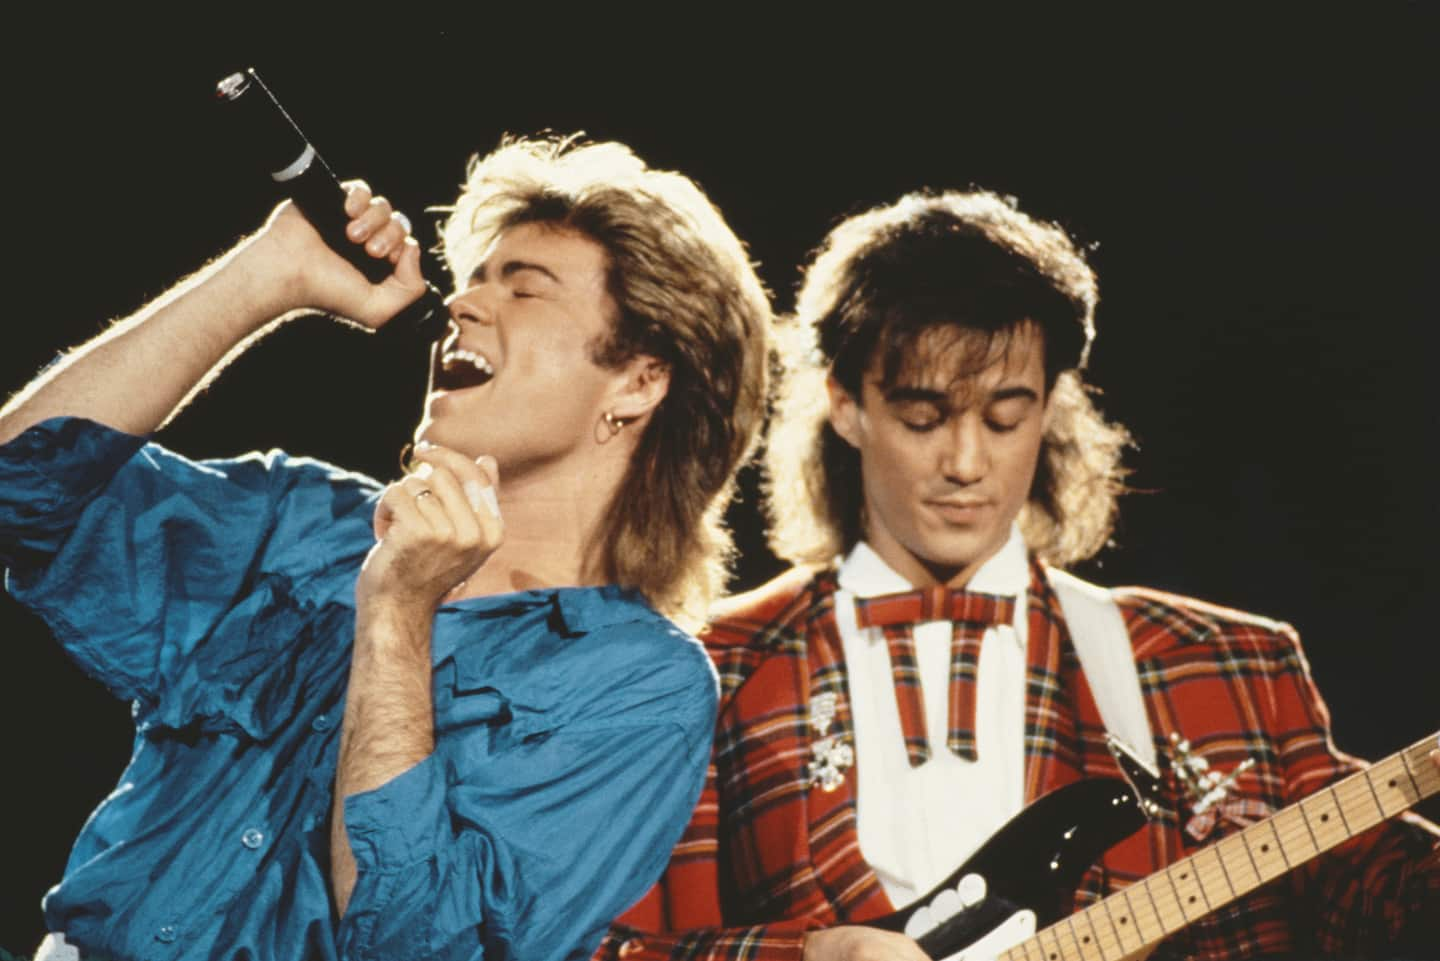 'Last Christmas' by Wham! is on my annual holiday playlist. Here's why.